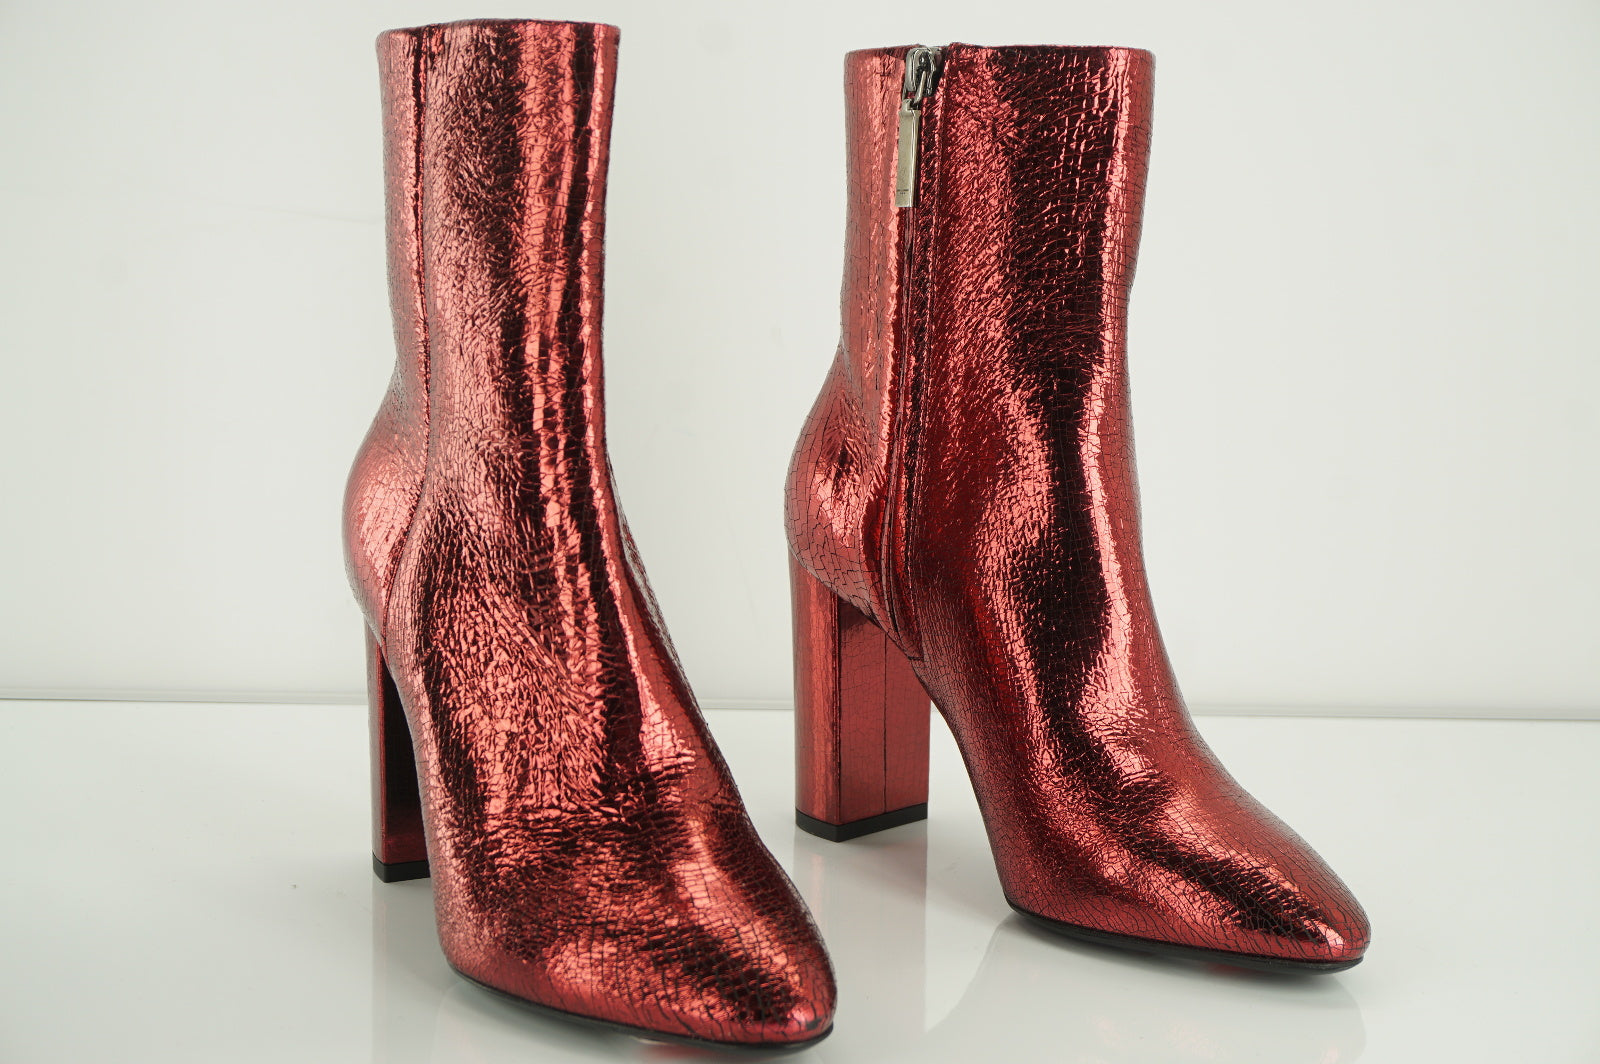 SAINT LAURENT Babies Red Metallic Ankle Boots Size 36.5 NIB YSL $1095 90MM